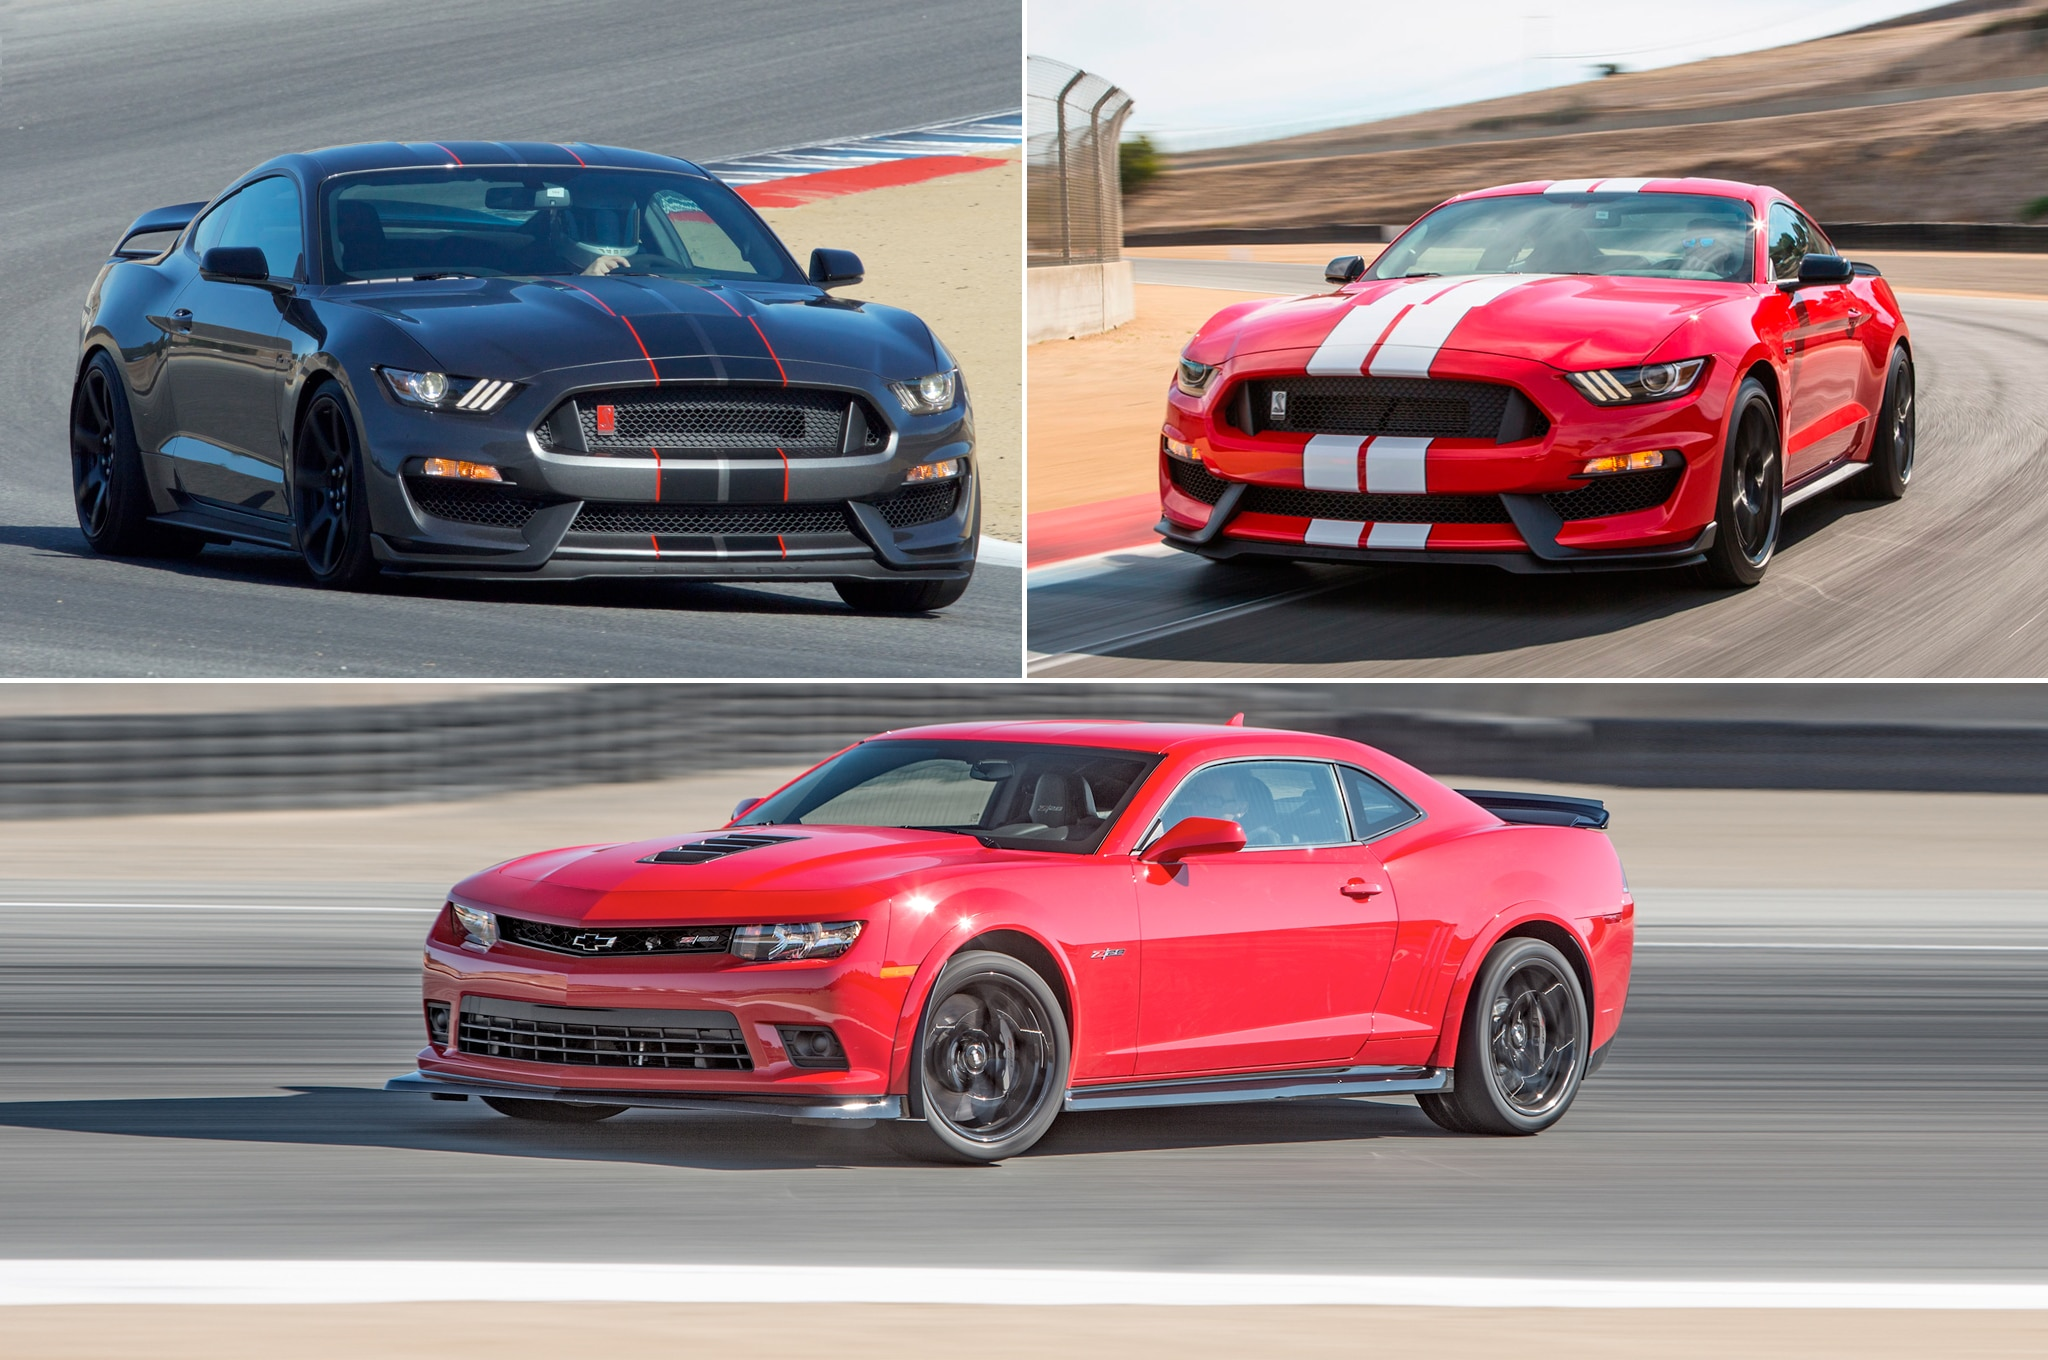 See How The Shelby Gt350 And Camaro Z 28 Compare On The Dyno